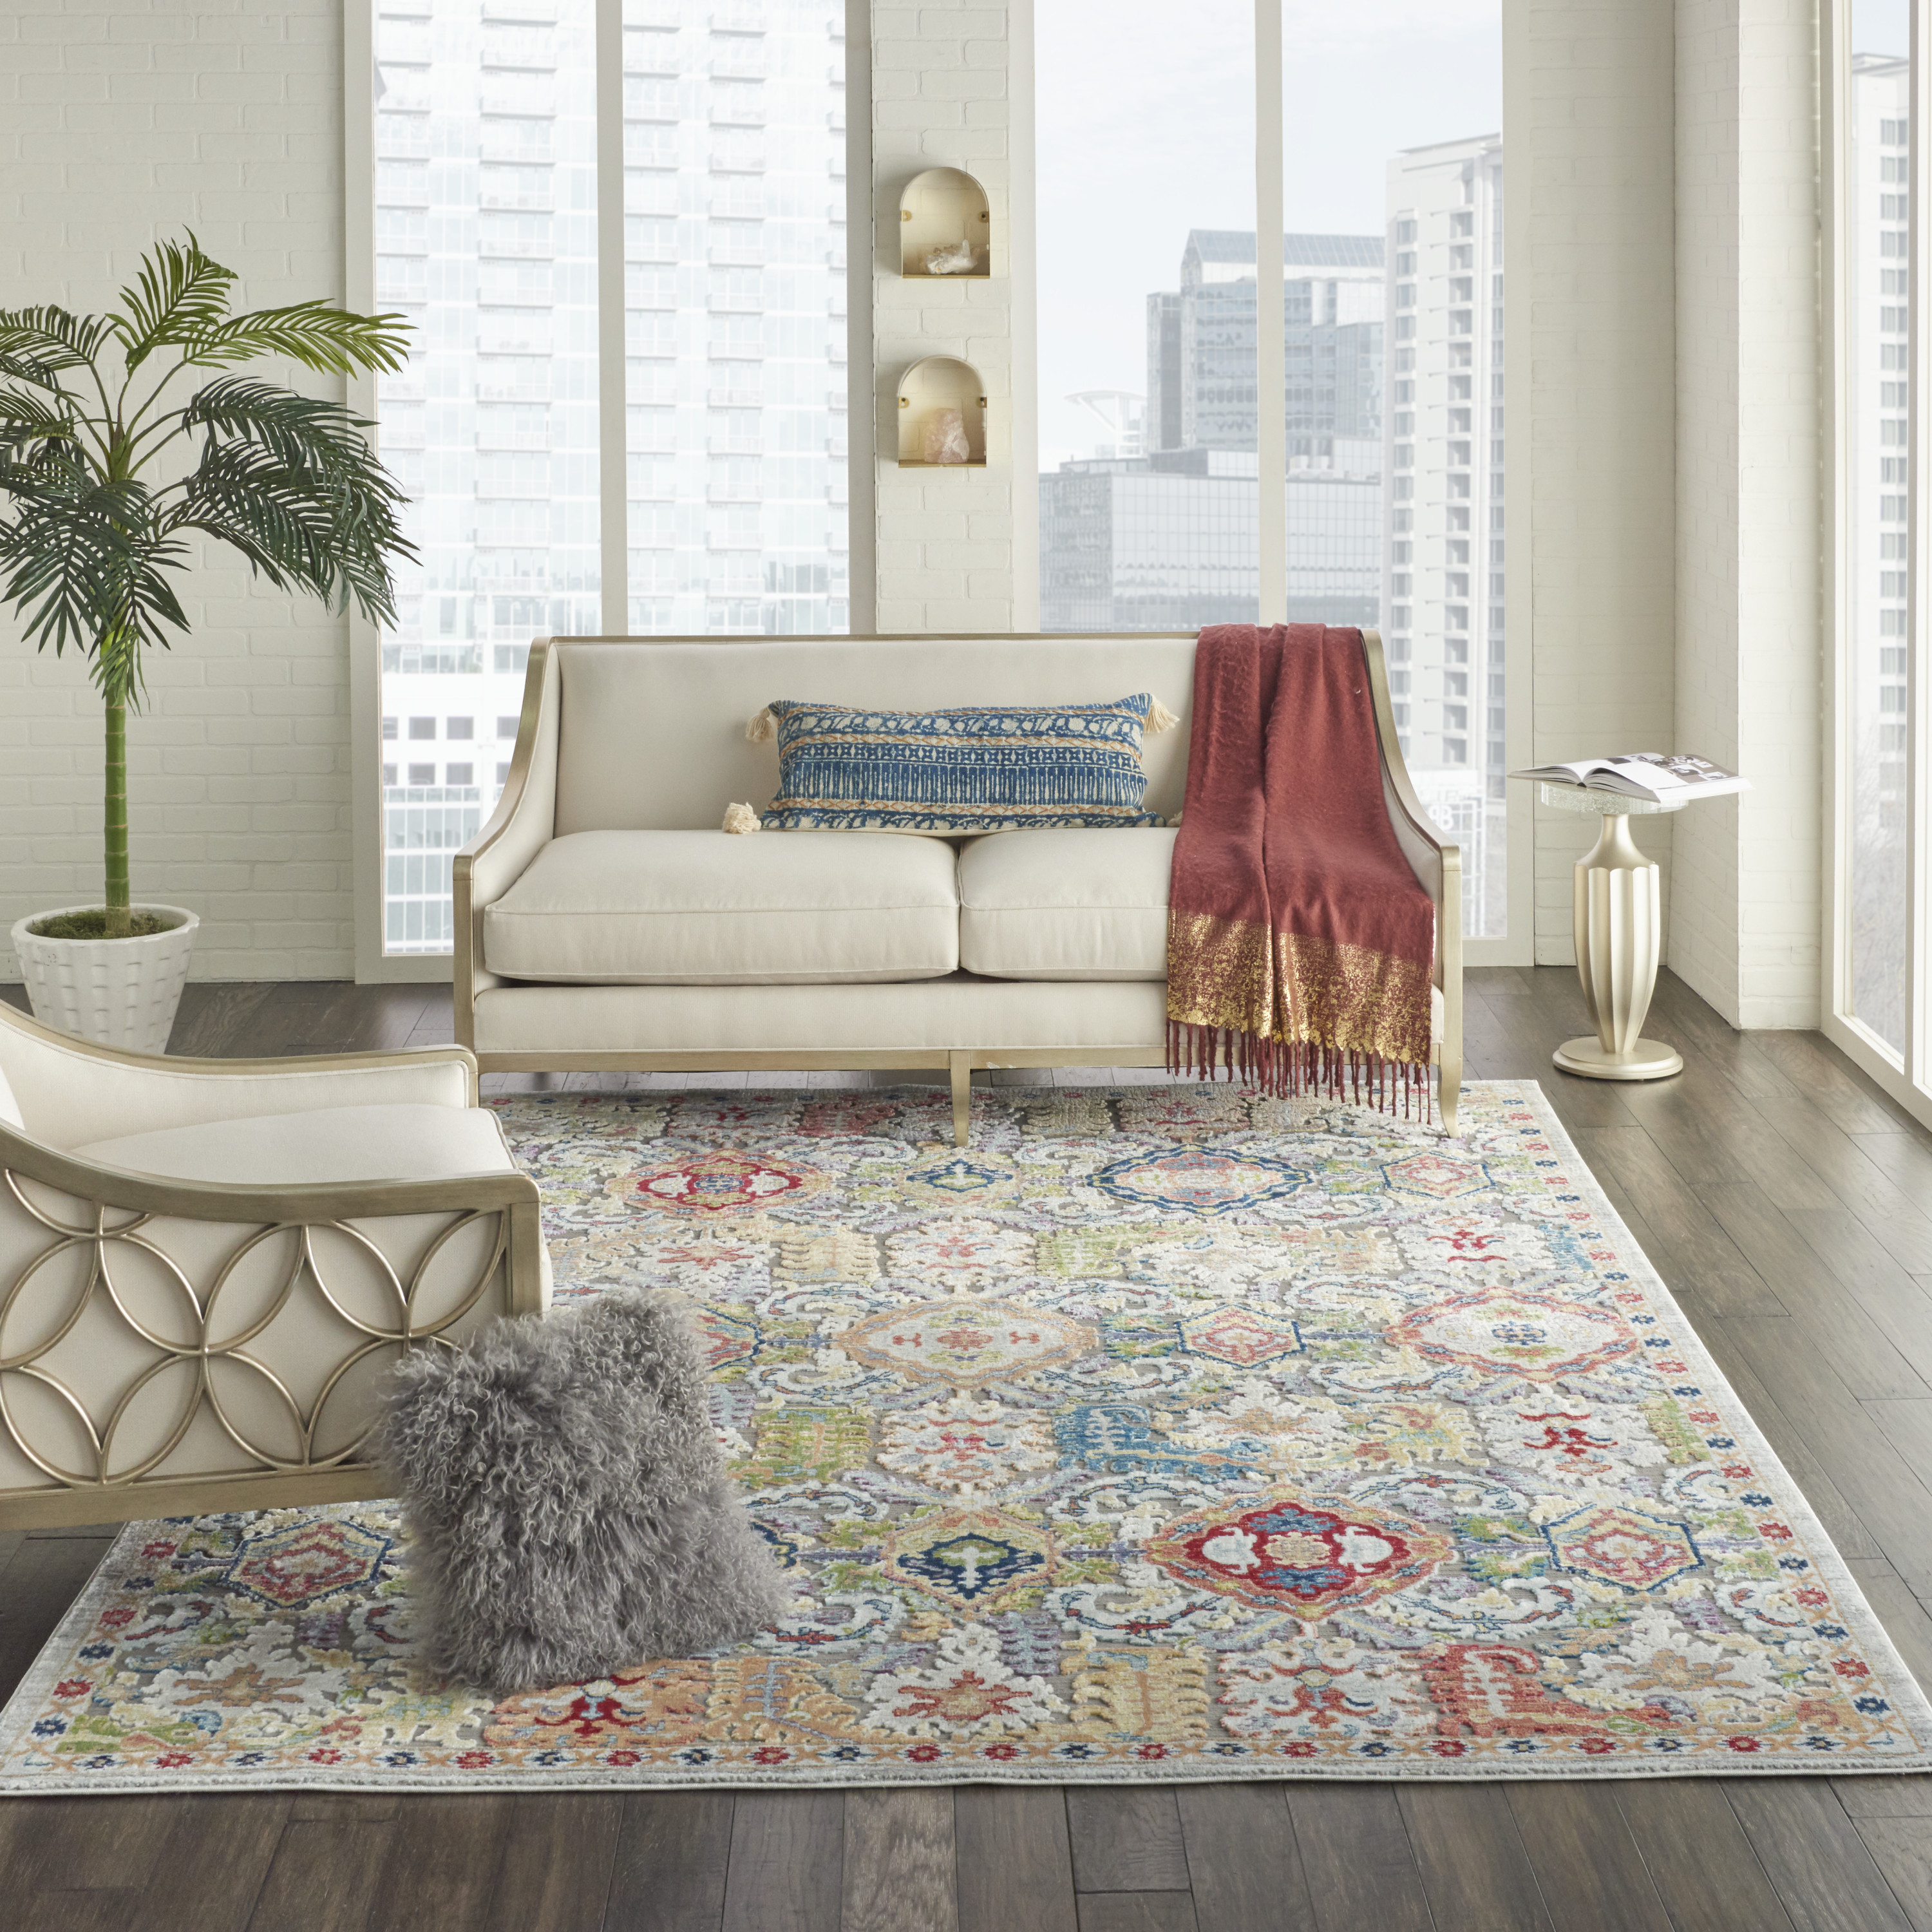 Nourison Ankara Global Anr12 Grey Multicolor 8'X10' Large Textured Rug